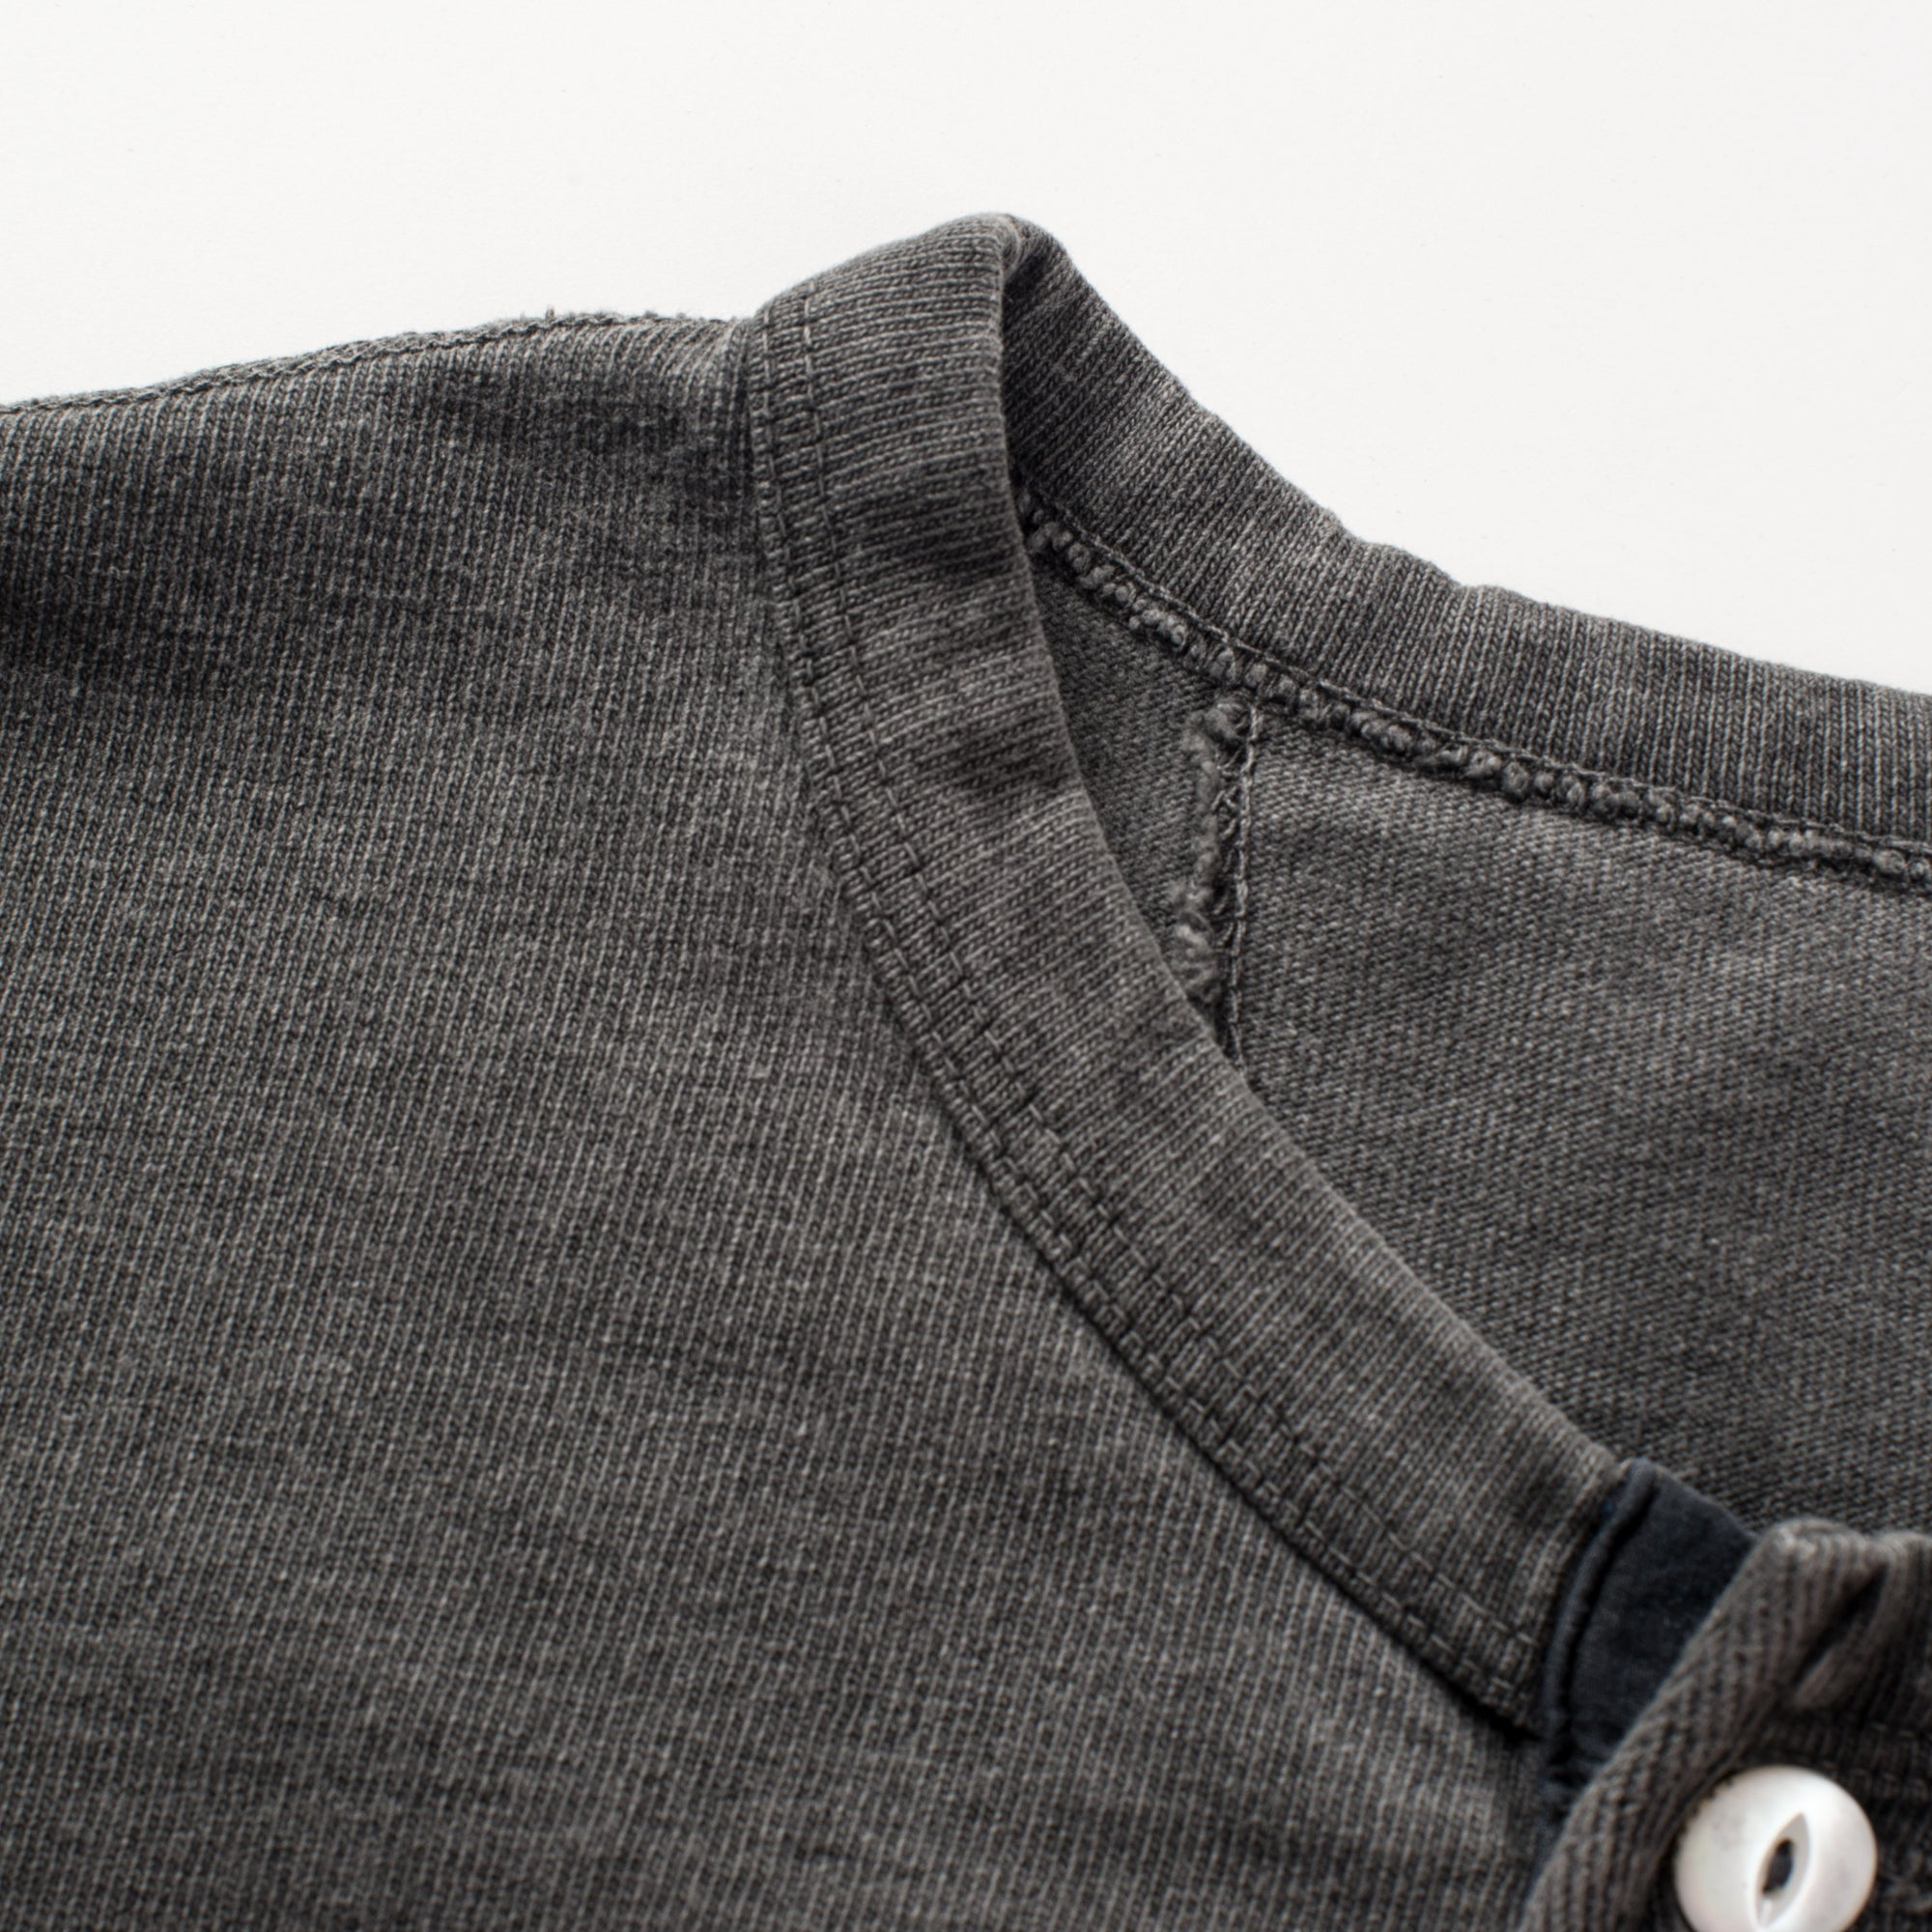 13 OUNCE HENLEY MIDNIGHT Collar